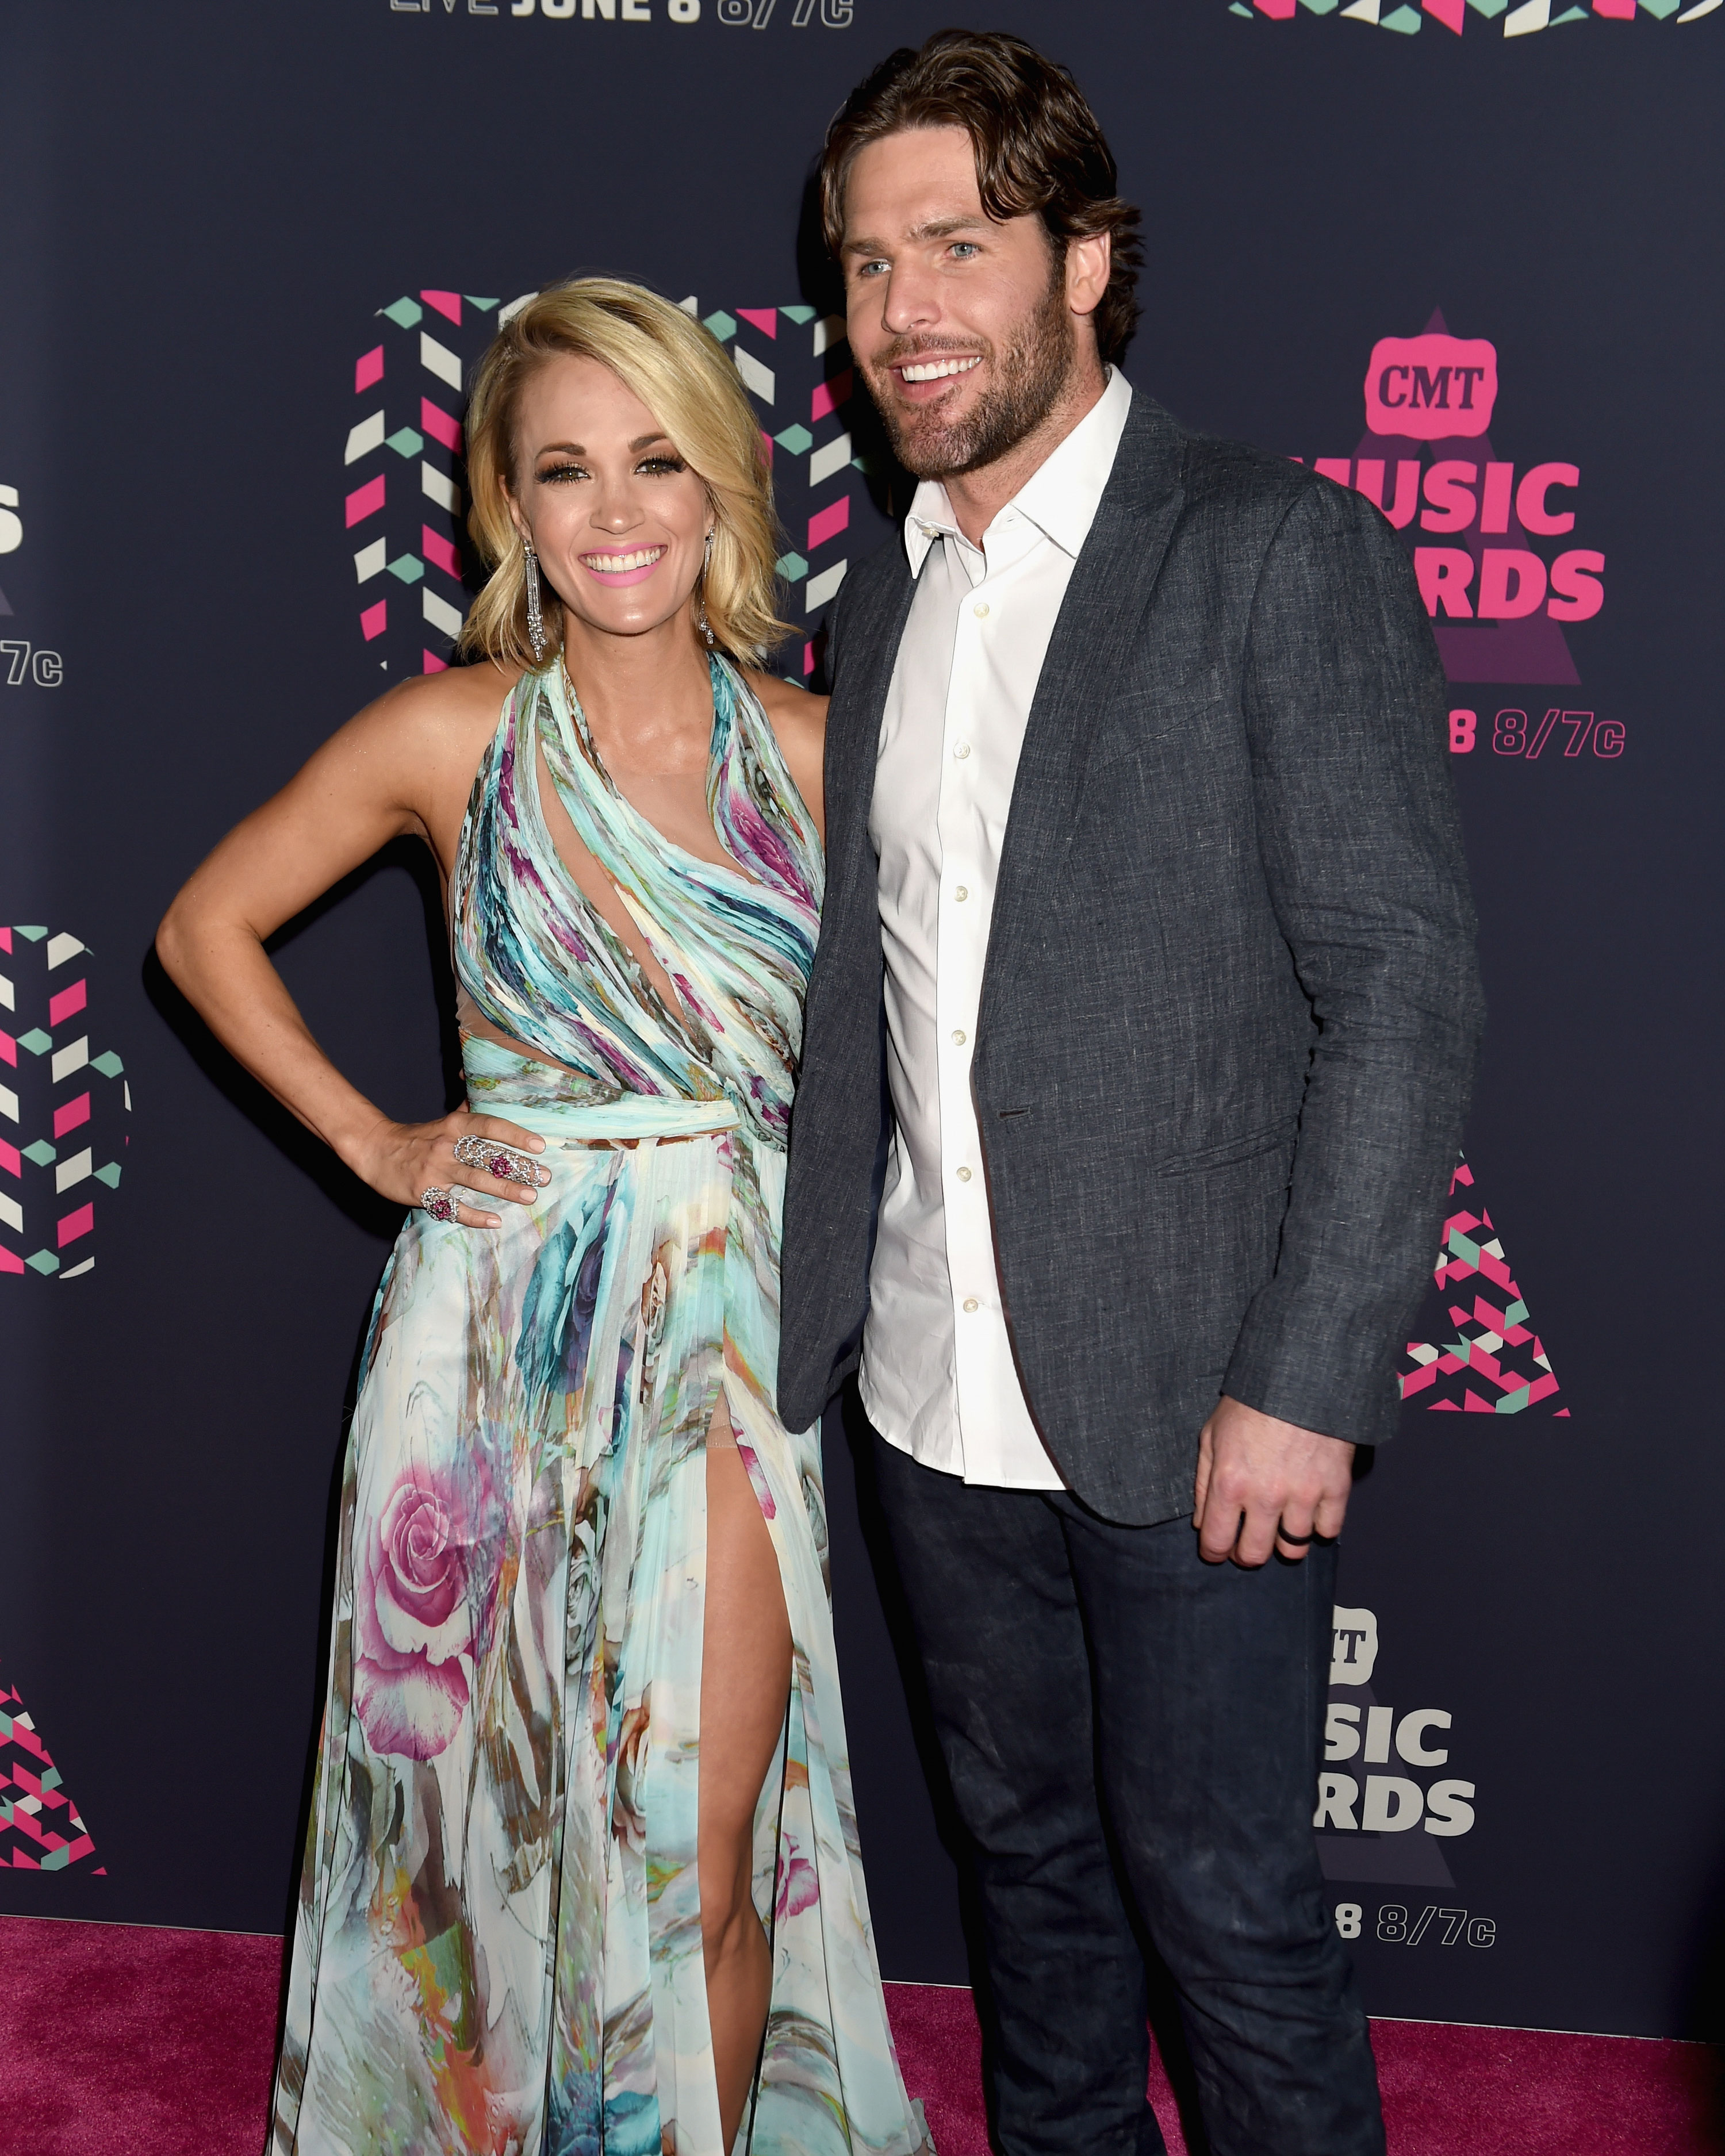 cmt-music-awards-carrie-underwood-mike-fisher-0616.jpg